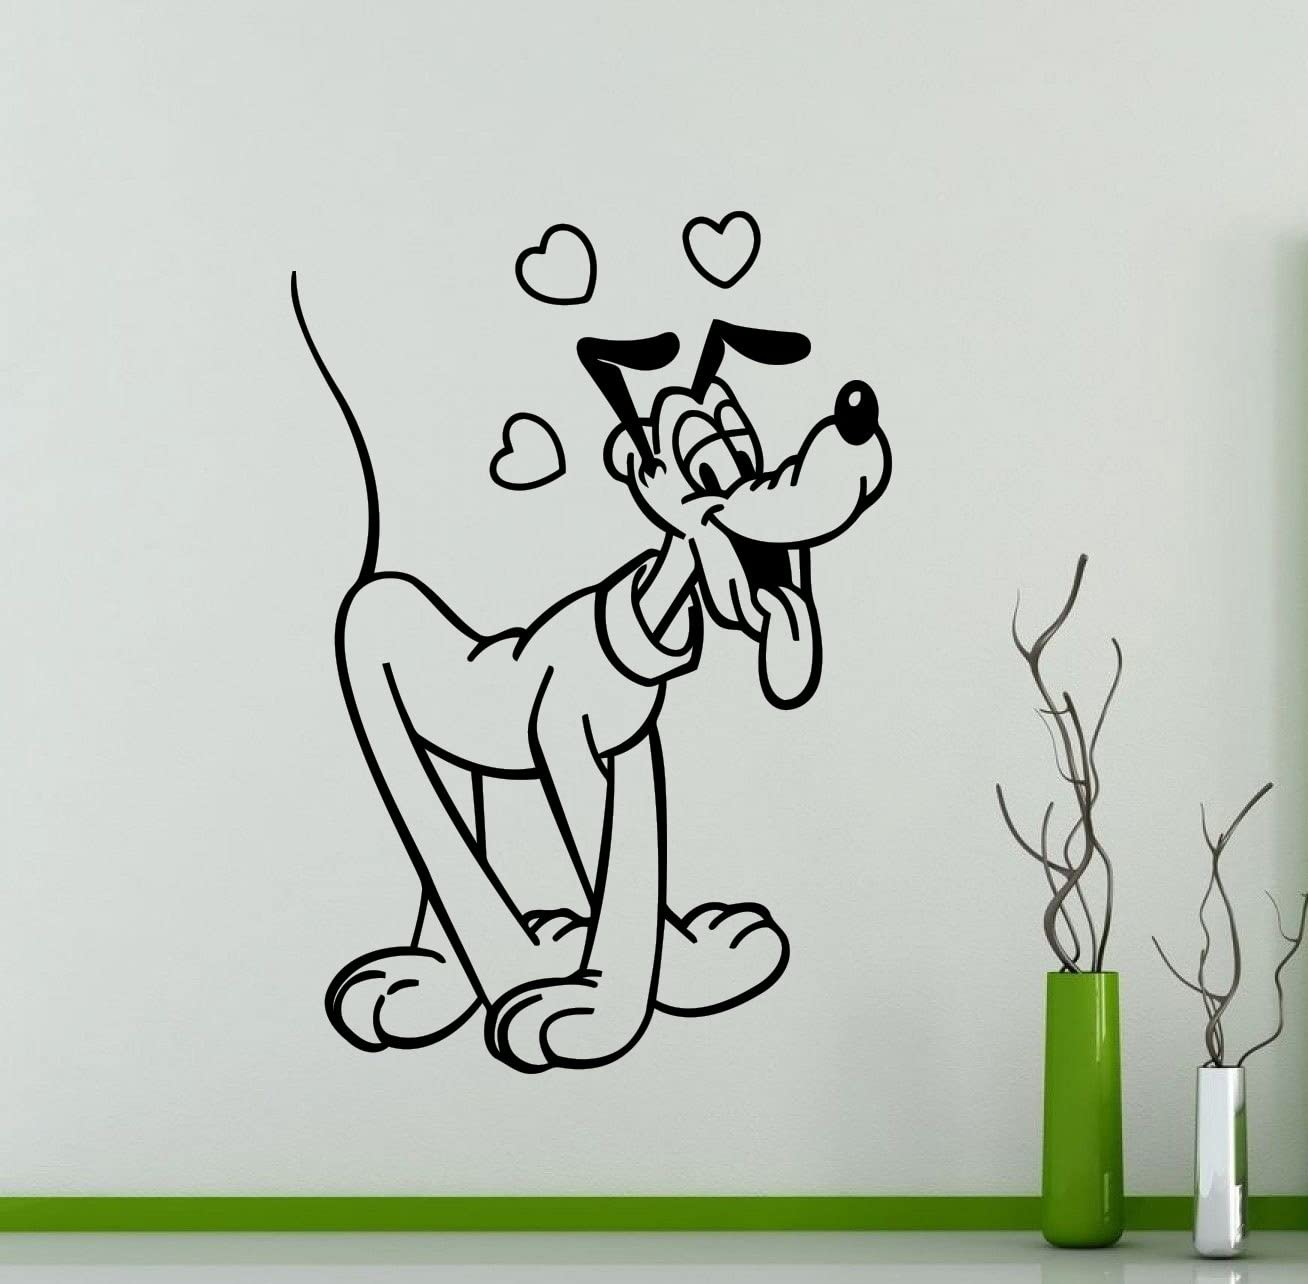 Pluto Wall Decal Mickey Mouse Cartoon Disney Vinyl Sticker Home Nursery Room Interior Art Decoration Any Kids Girl Boy Room Mural Waterproof Vinyl Sticker (480xx)